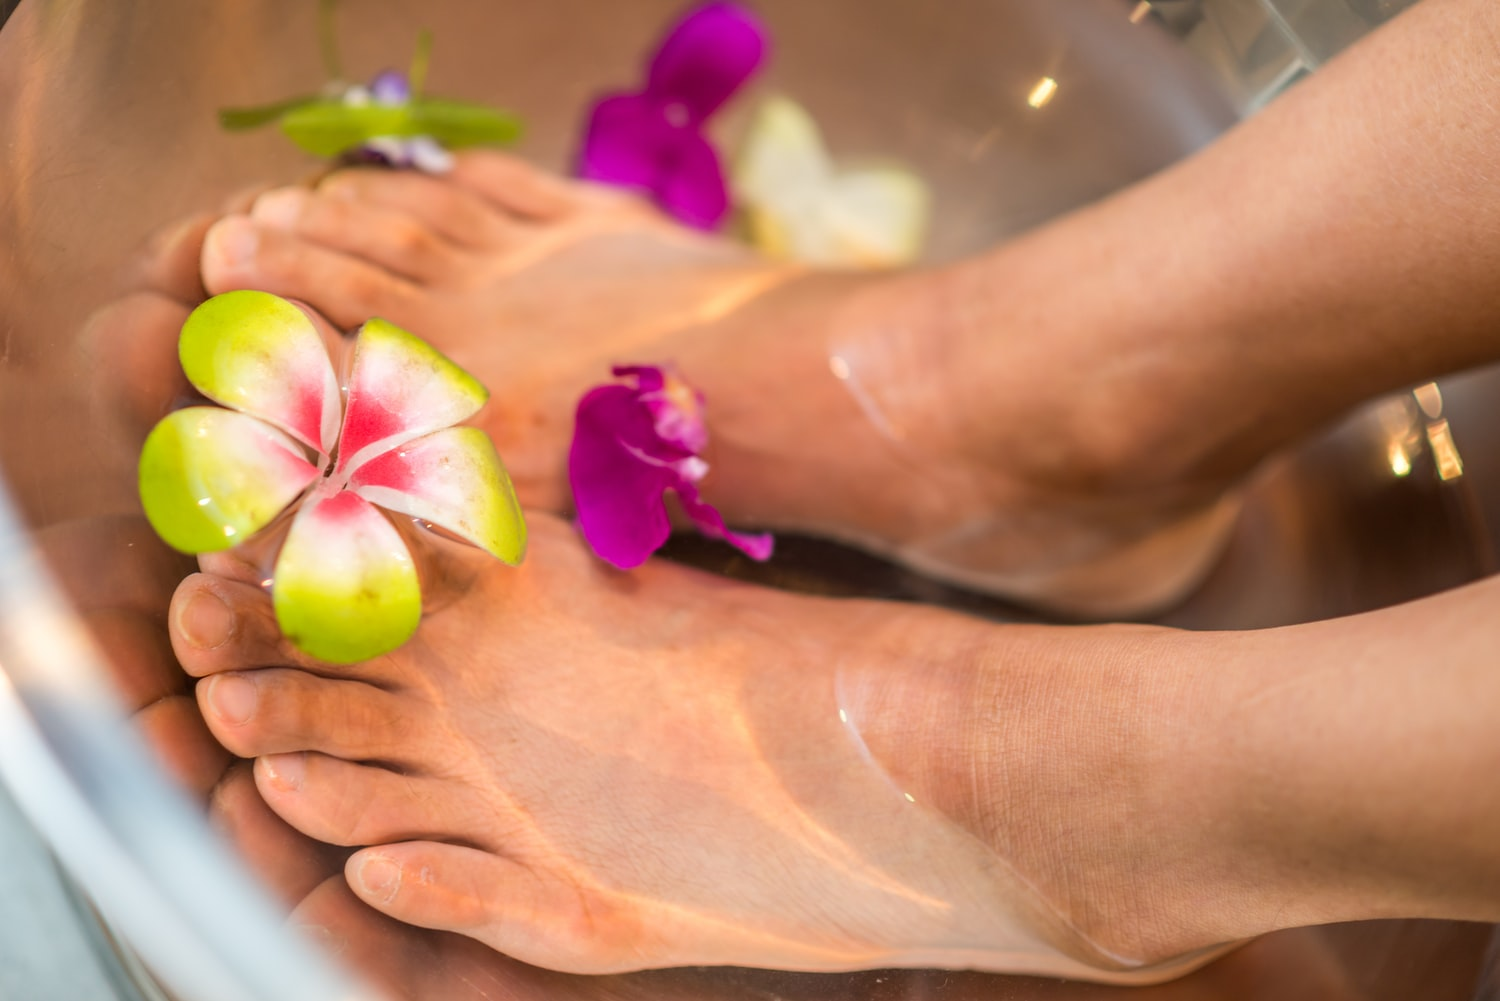 Feet soaking on a water with flowers